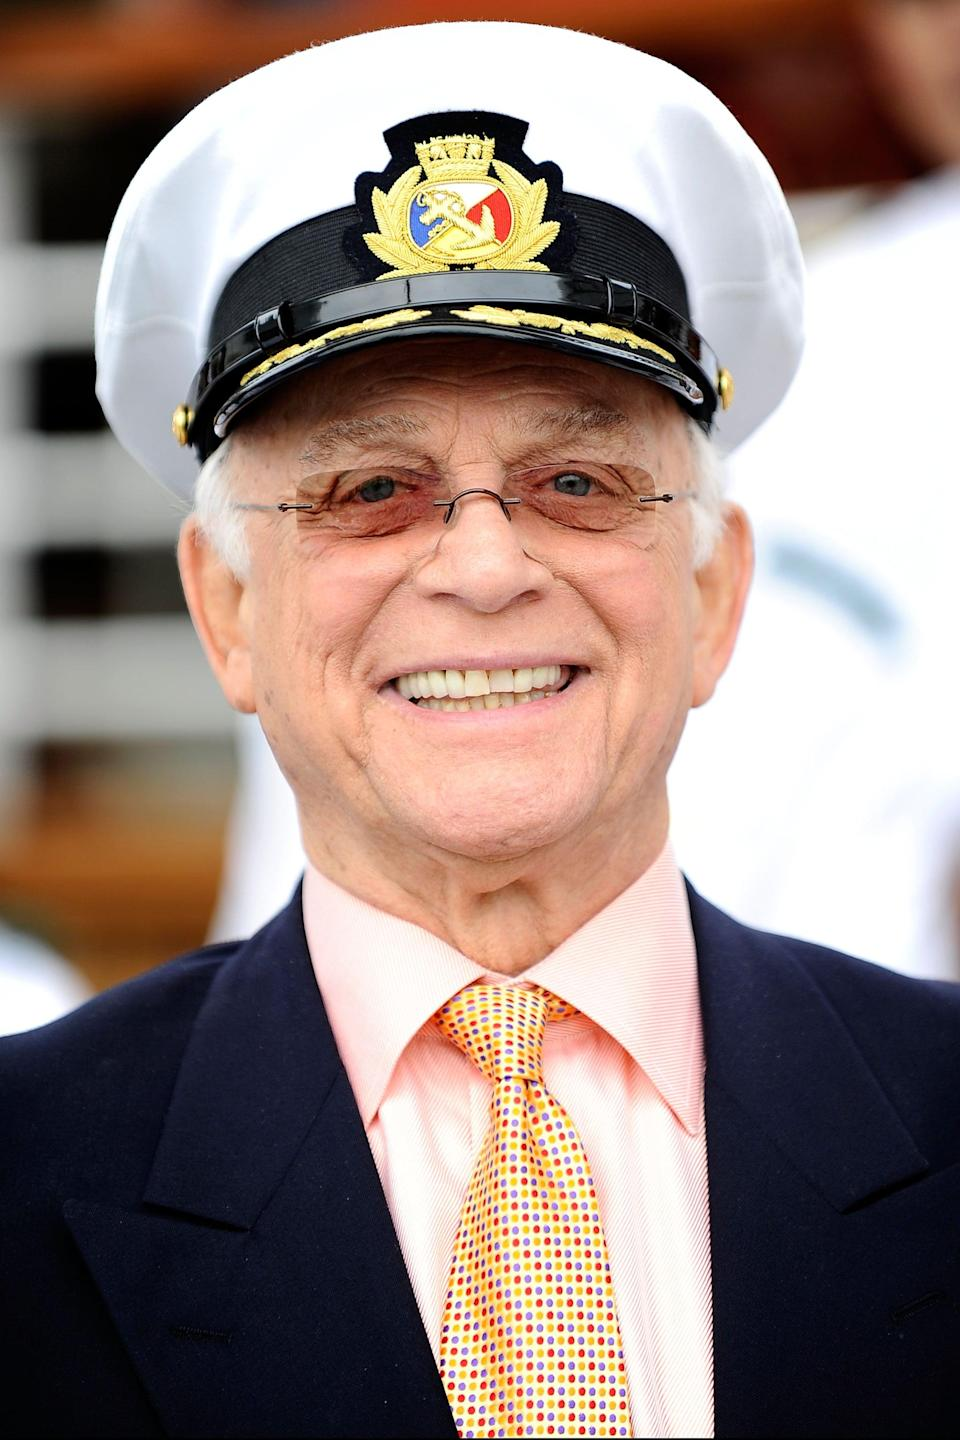 """<p>Actor Gavin MacLeod of <strong>The Love Boat</strong> and <strong>The Mary Tyler Moore Show</strong> died on May 29 at age 90. Gavin's nephew, Mark See, <a href=""""https://www.nytimes.com/2021/05/29/arts/television/gavin-macleod-dead.html"""" class=""""link rapid-noclick-resp"""" rel=""""nofollow noopener"""" target=""""_blank"""" data-ylk=""""slk:confirmed his death"""">confirmed his death</a> to <strong>The New York Times</strong> and said the cause was unknown. </p>"""